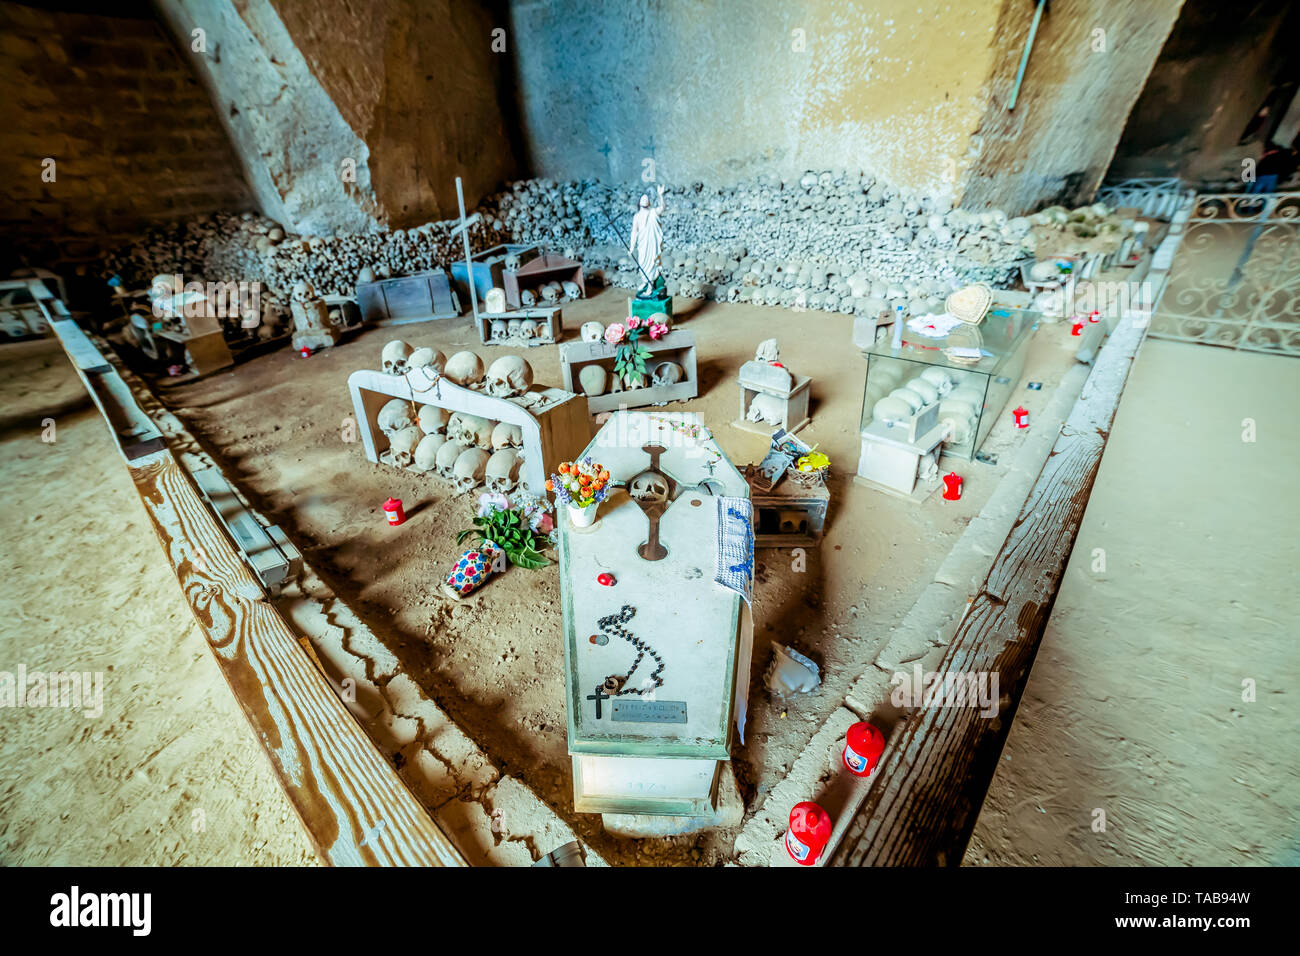 Naples, Italy. 14th Apr, 2019. The cemetery of Fontanelle is an ancient cemetery of the city of Naples, located in via Fontanelle. Called in this way for the presence in ancient times of water sources, the cemetery houses about 40,000 remains of people, victims of the great plague of 1656 and cholera of 1836. Credit: Luigi Rizzo/Pacific Press/Alamy Live News - Stock Image